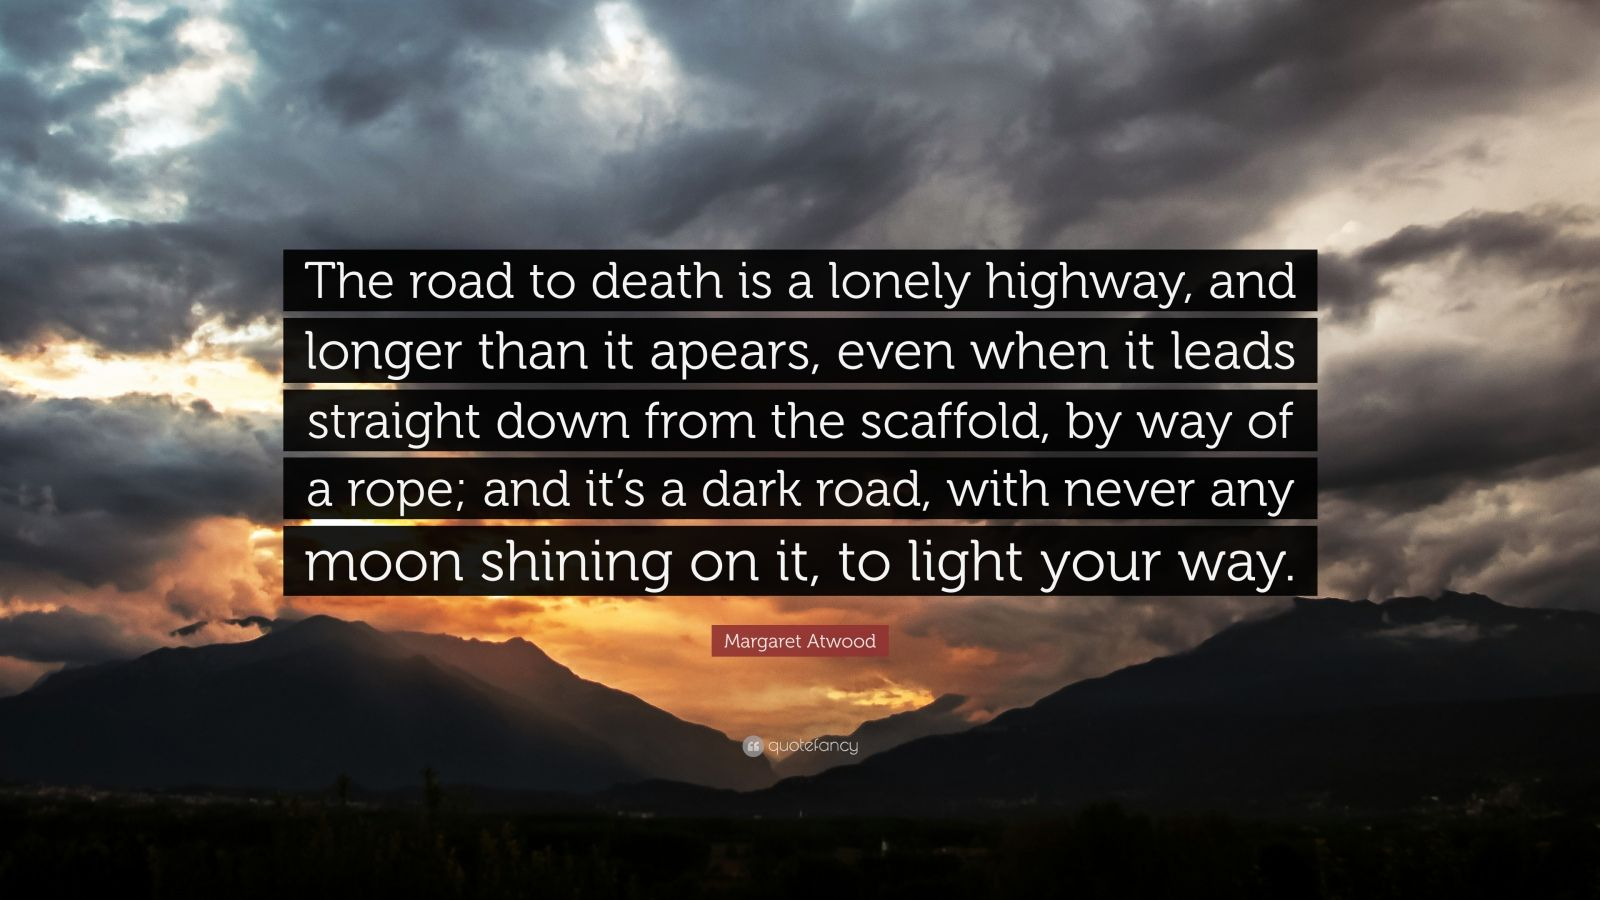 """Margaret Atwood Quote: """"The road to death is a lonely highway, and longer than it apears, even when it leads straight down from the scaffold, by way of a rope; and it's a dark road, with never any moon shining on it, to light your way."""""""